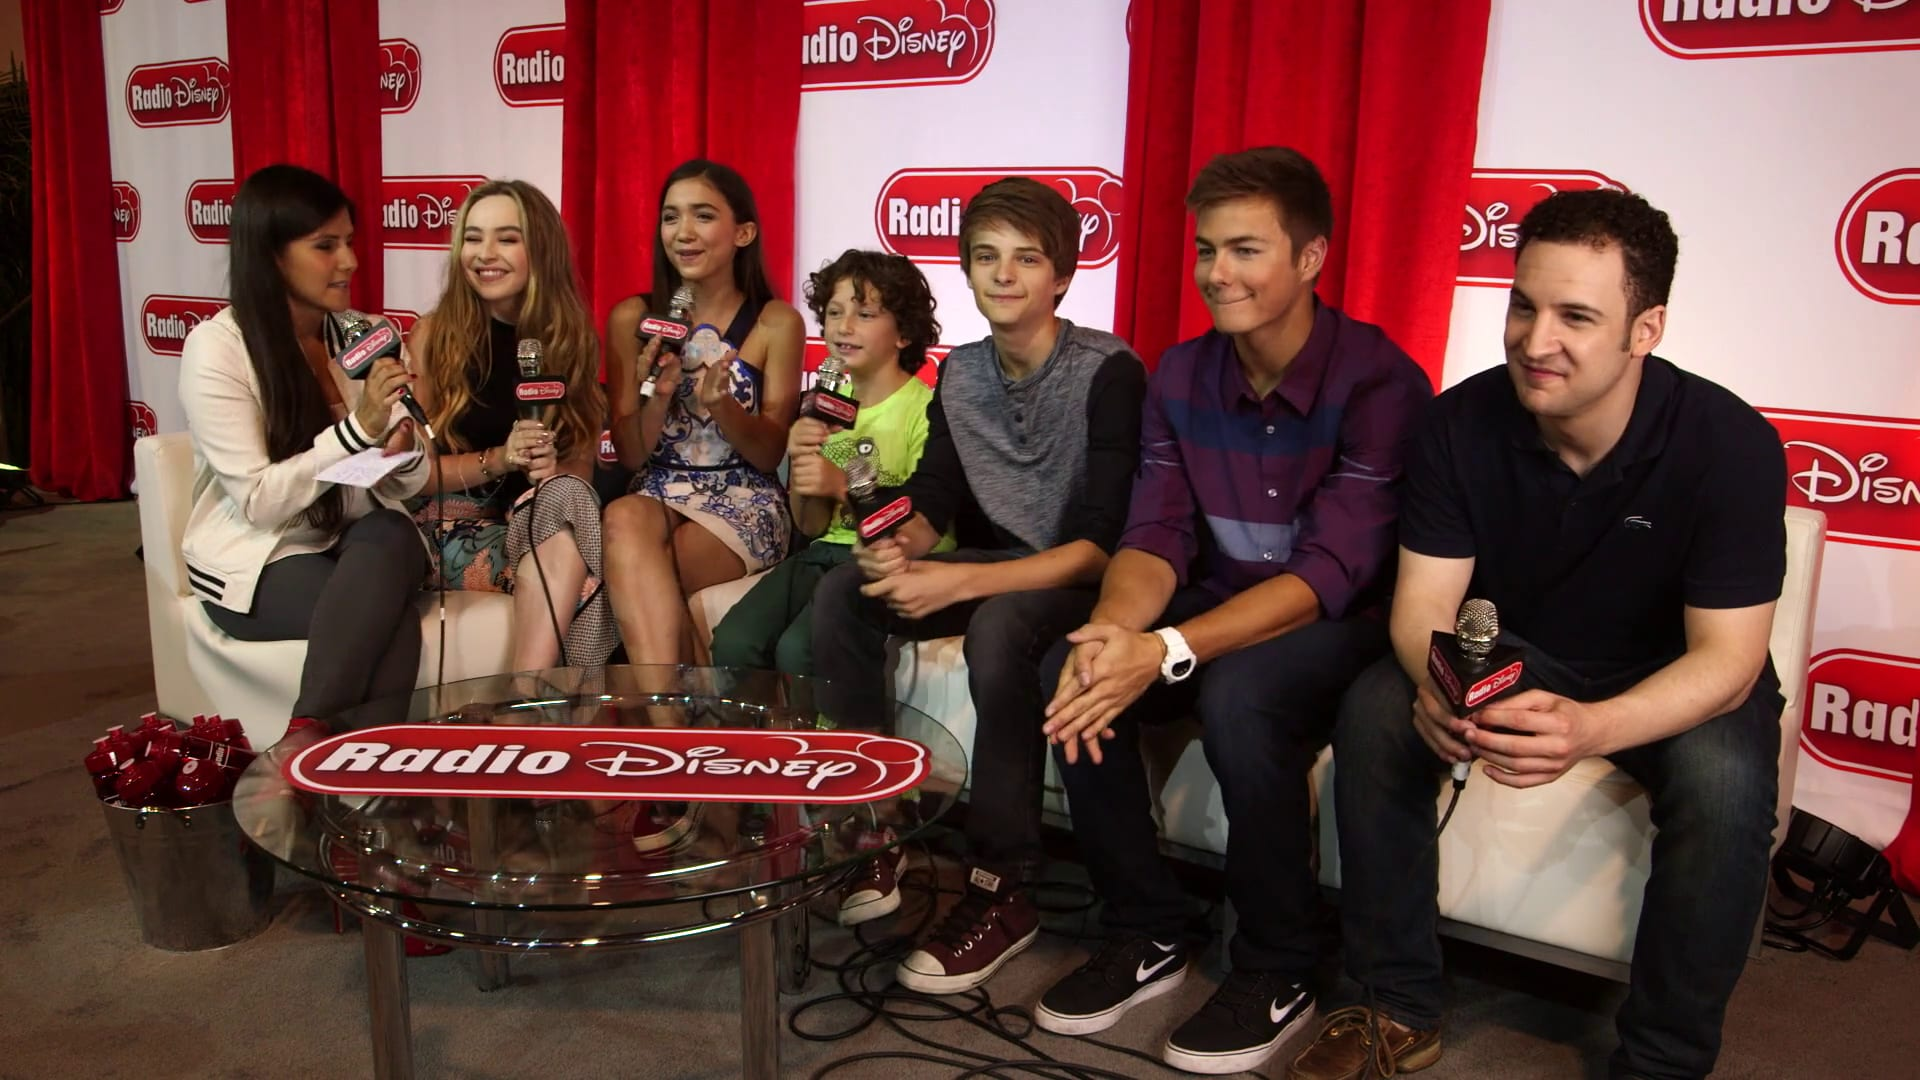 Cast of Girl Meets World at D23 Expo 2015 - Radio Disney